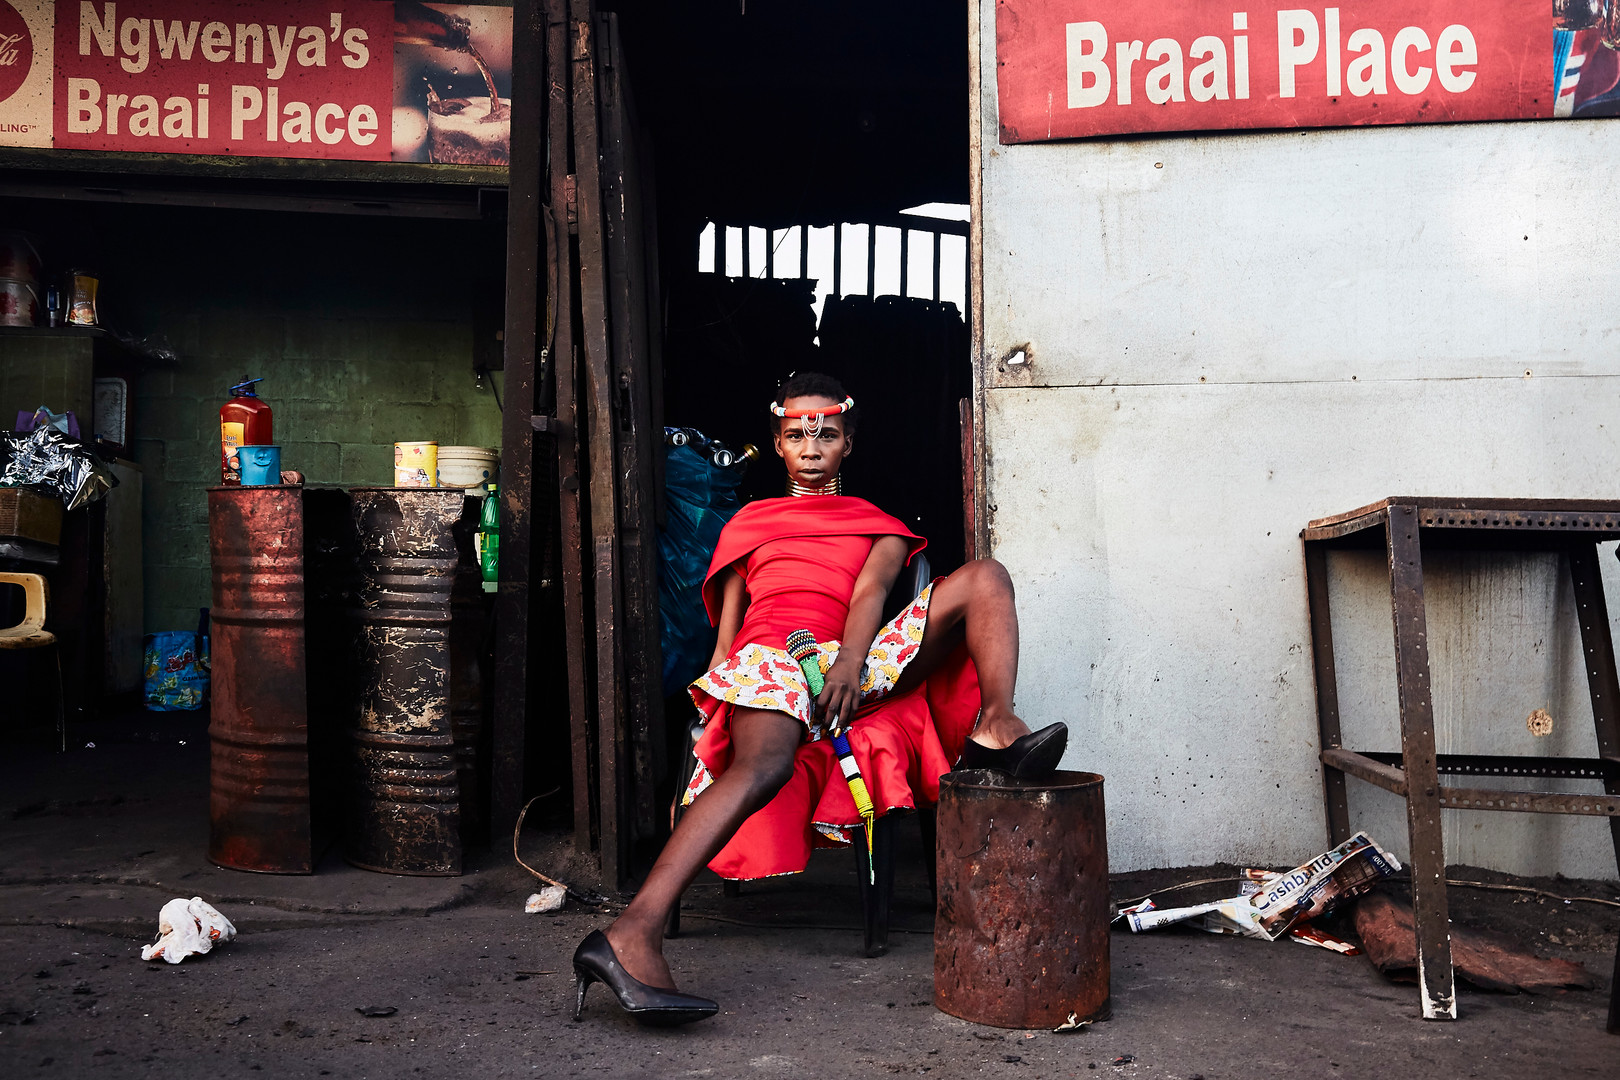 "Mandisi Dolle Phika, from Paarl, poses in a section of the tshisanyama in Khayelitsha. ""I have faced homophobia since Primary School. The word 'mofffie' was often used to humiliate and break me. It is this derogatory term which was used as a weapon to shut me out. I started referring to myself as a 'moffie' so that the word would not hurt me. I used the word to empower myself. Whenever I was referred to as a 'moffie', I would not be hurt. The word lost its power to dismantle and demean me."" Aug. 4, 2019."